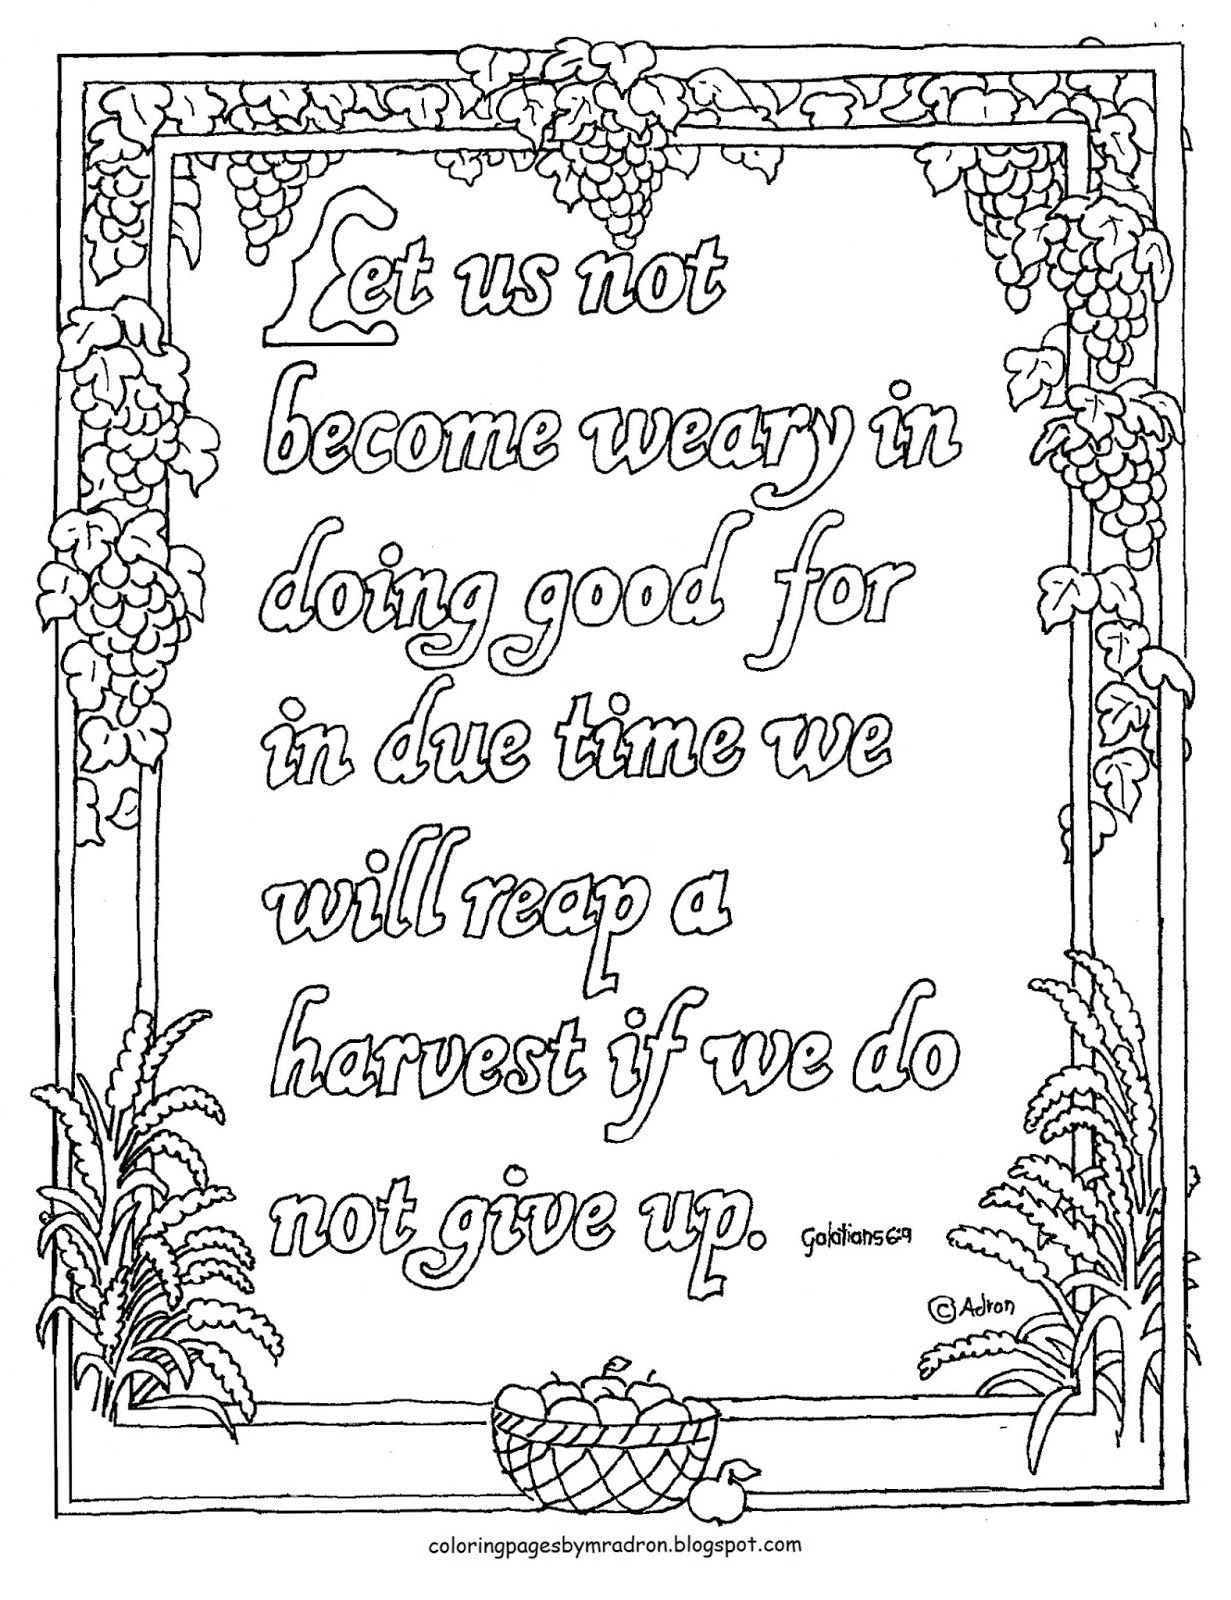 Coloring Pages for Kids by Mr. Adron: Free Printable Galatians 6:9 ...